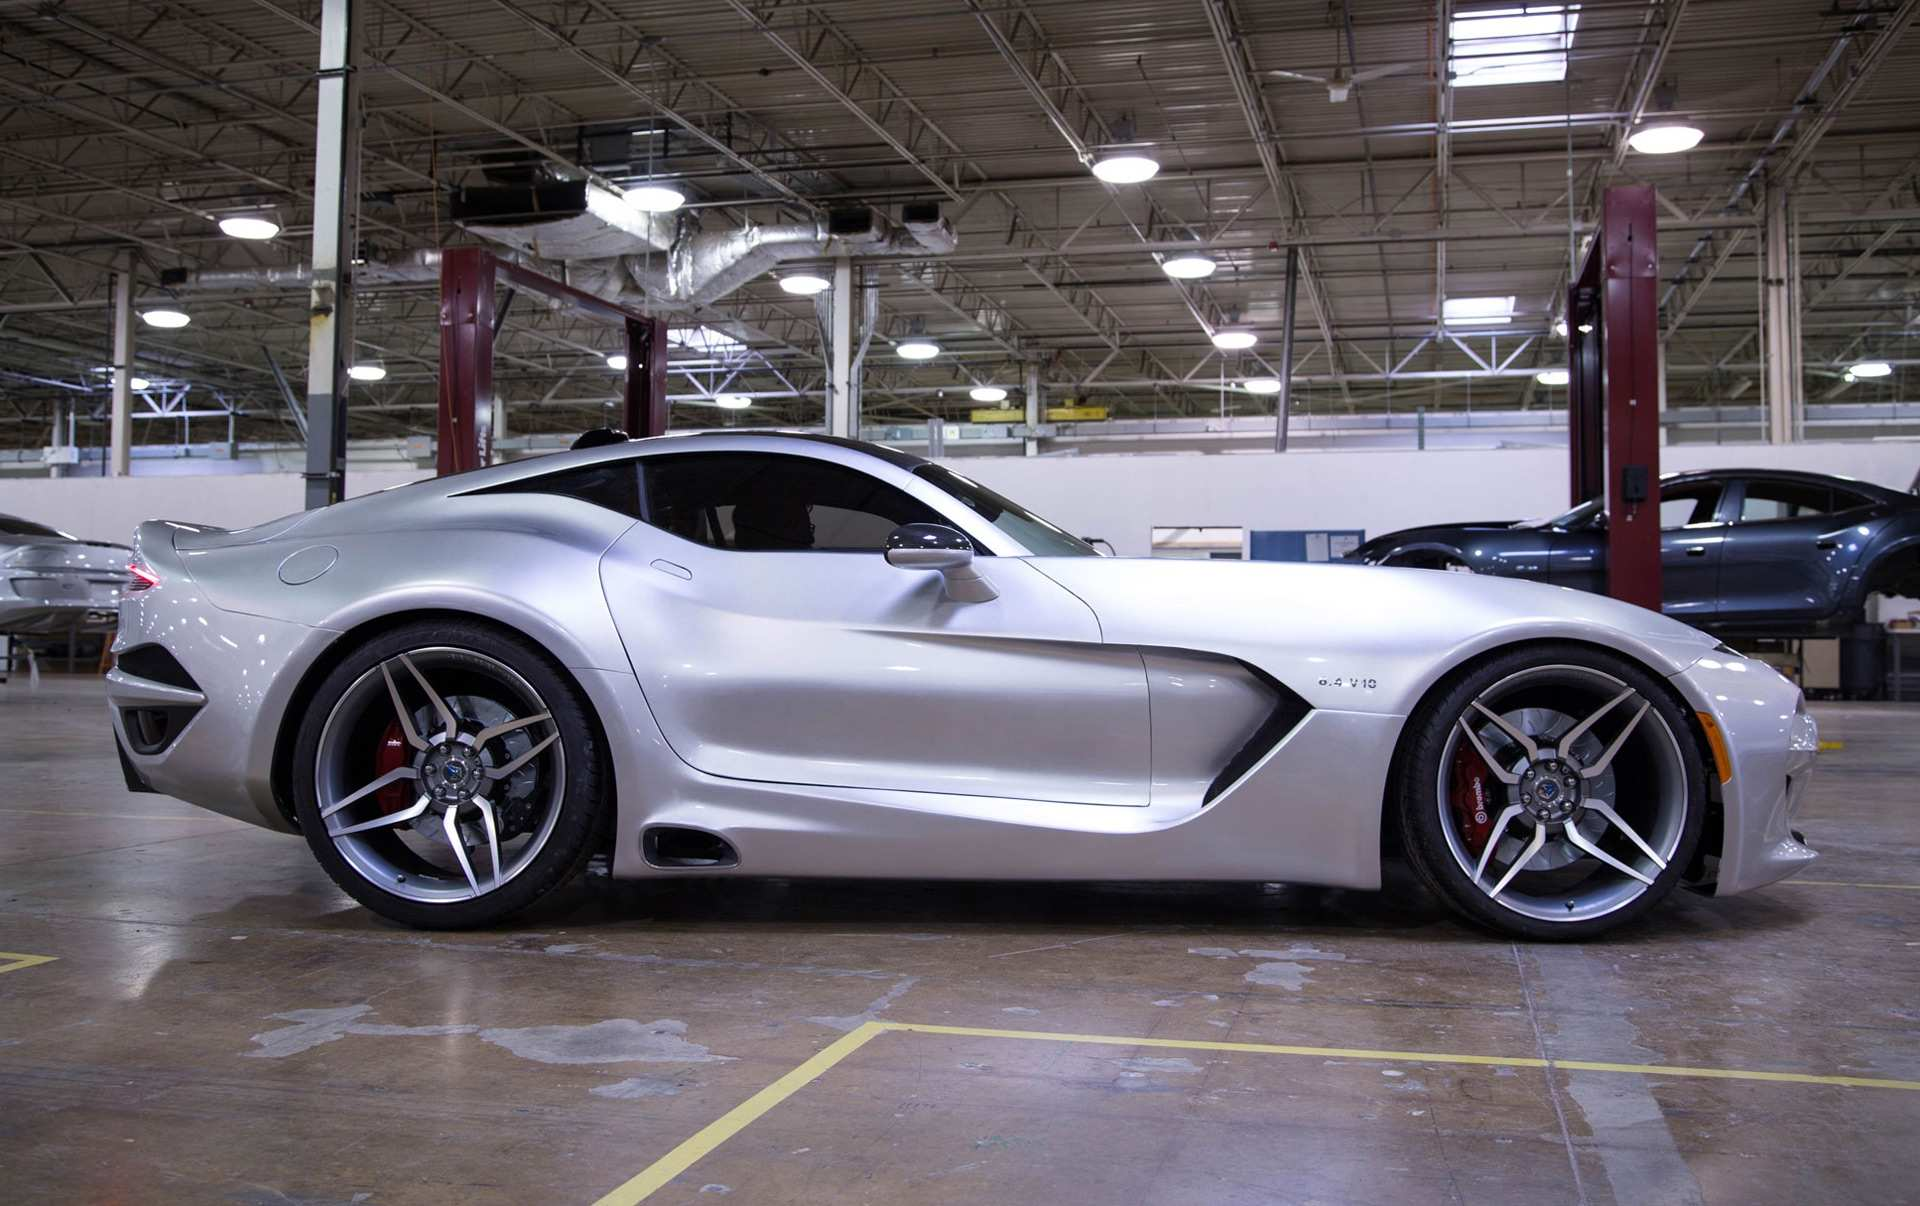 63 New 2019 Dodge Viper ACR Engine